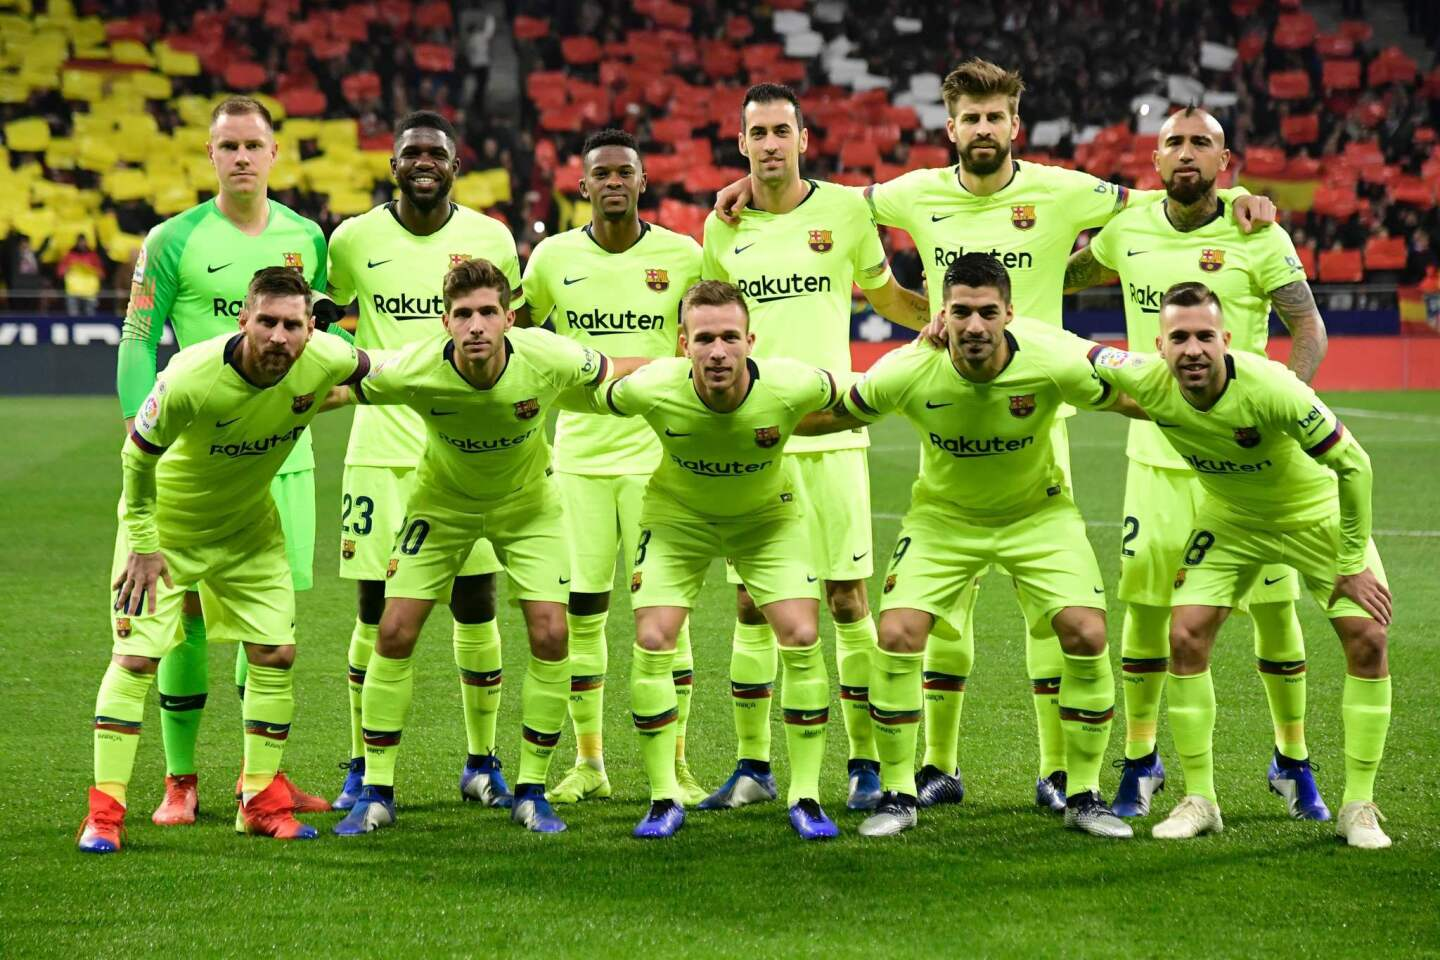 (Back L-R) Barcelona's German goalkeeper Marc-Andre Ter Stegen, Barcelona's French defender Samuel Umtiti, Barcelona's Portuguese defender Nelson Semedo, Barcelona's Spanish midfielder Sergio Busquets, Barcelona's Spanish defender Gerard Pique, Barcelona's Chilean midfielder Arturo Vidal, (L-R) Barcelona's Argentinian forward Lionel Messi, Barcelona's Spanish midfielder Sergi Roberto, Barcelona's Brazilian midfielder Arthur, Barcelona's Uruguayan forward Luis Suarez and Barcelona's Spanish defender Jordi Alba pose for a group picture ahead of the Spanish league football match between Club Atletico de Madrid and FC Barcelona at the Wanda Metropolitano stadium in Madrid on November 24, 2018. (Photo by JAVIER SORIANO / AFP)JAVIER SORIANO/AFP/Getty Images ** OUTS - ELSENT, FPG, CM - OUTS * NM, PH, VA if sourced by CT, LA or MoD **